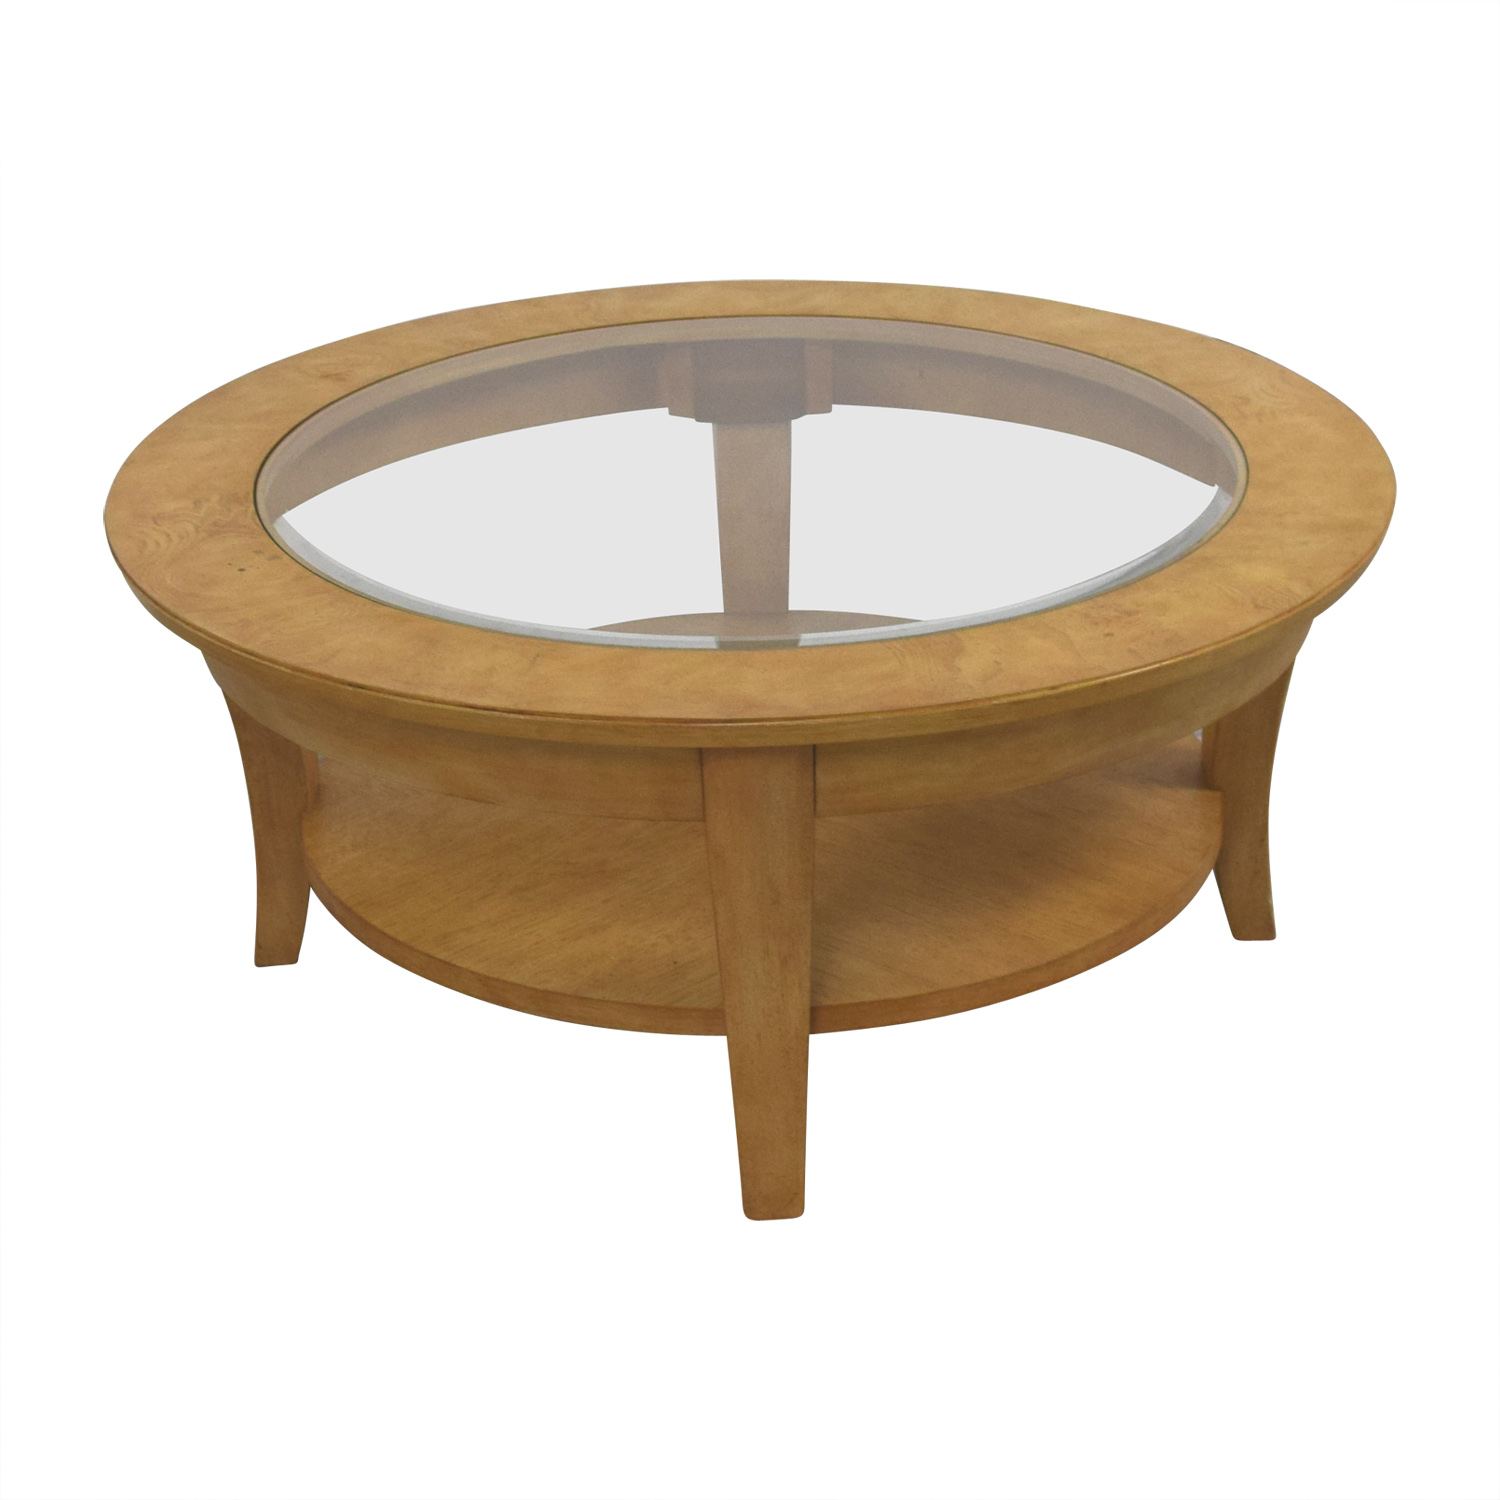 Round Glass and Wood Cocktail Table / Coffee Tables